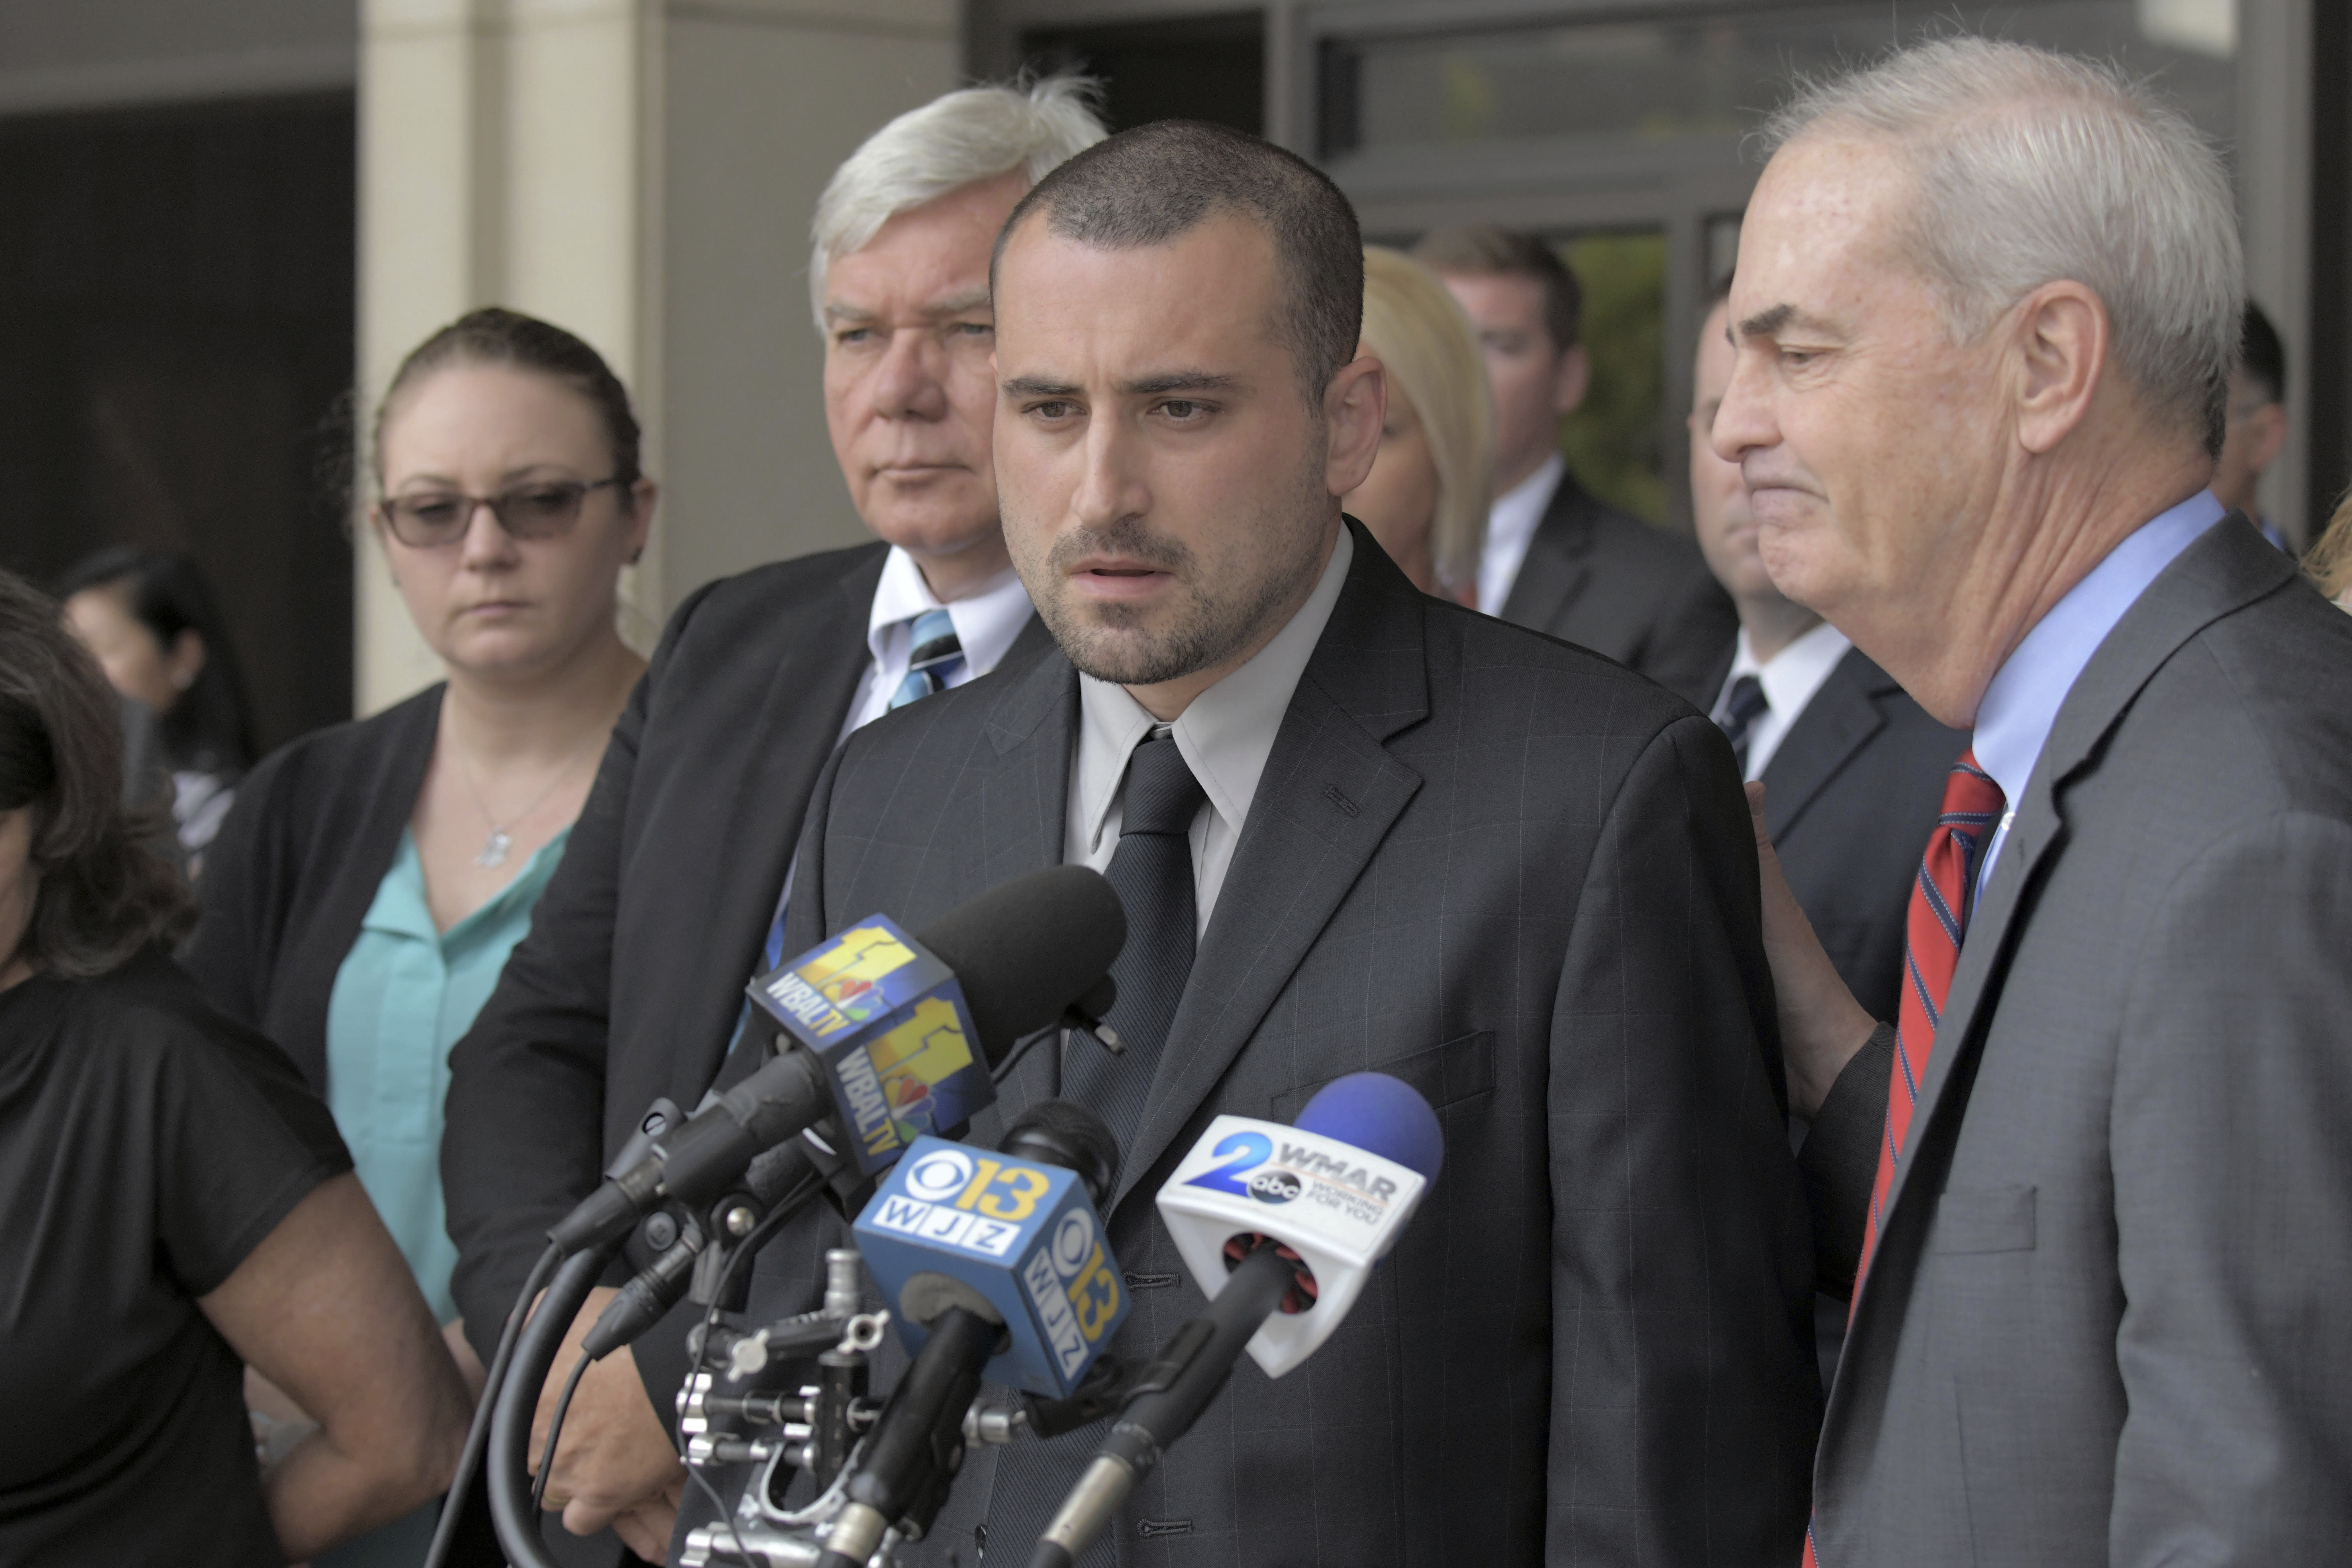 Widower Tim Caprio speaks, between father in-law Garry Sorrells, left, and Baltimore County State's Attorney Scott Shellenberger following the life sentence meted out for 17-year-old Dawnta Harris at Baltimore County Circuit Court Wednesday, Aug. 21, 2019, in Towson, Md. Harris was tried as an adult earlier this year and convicted of felony murder in the slaying of Baltimore County police Officer Amy Caprio. (Karl Merton Ferron/The Baltimore Sun via AP)